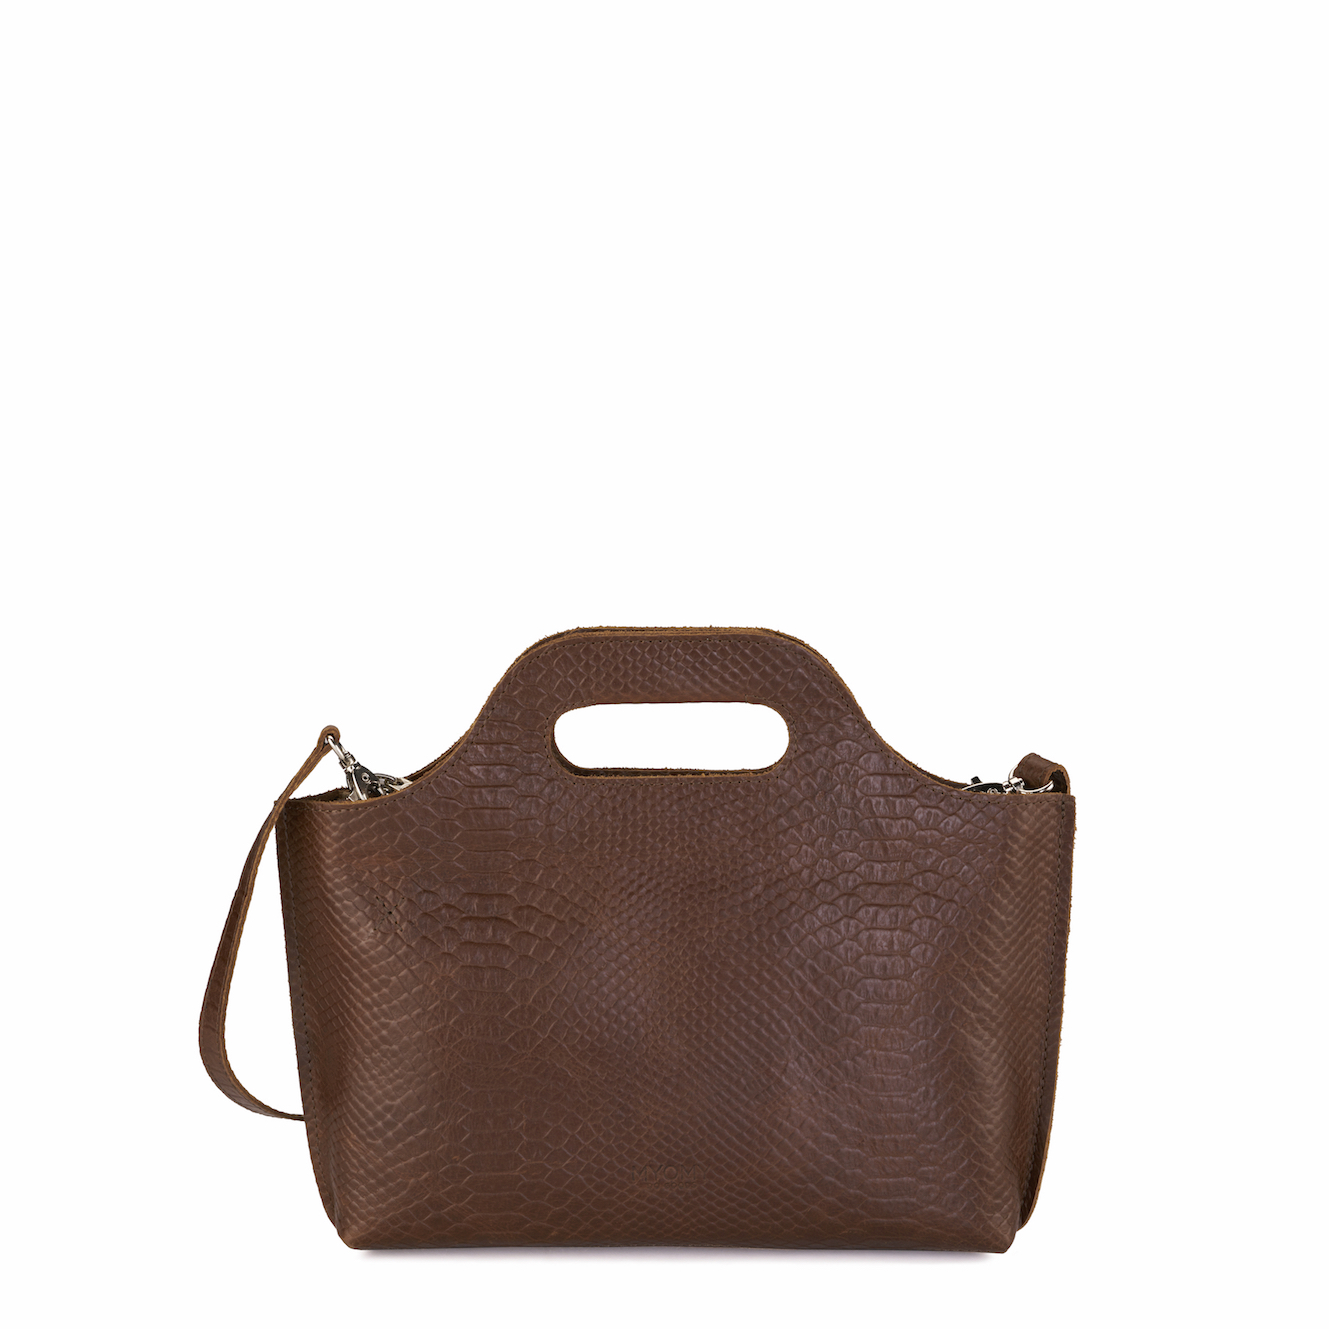 MY CARRY BAG Mini – anaconda brandy